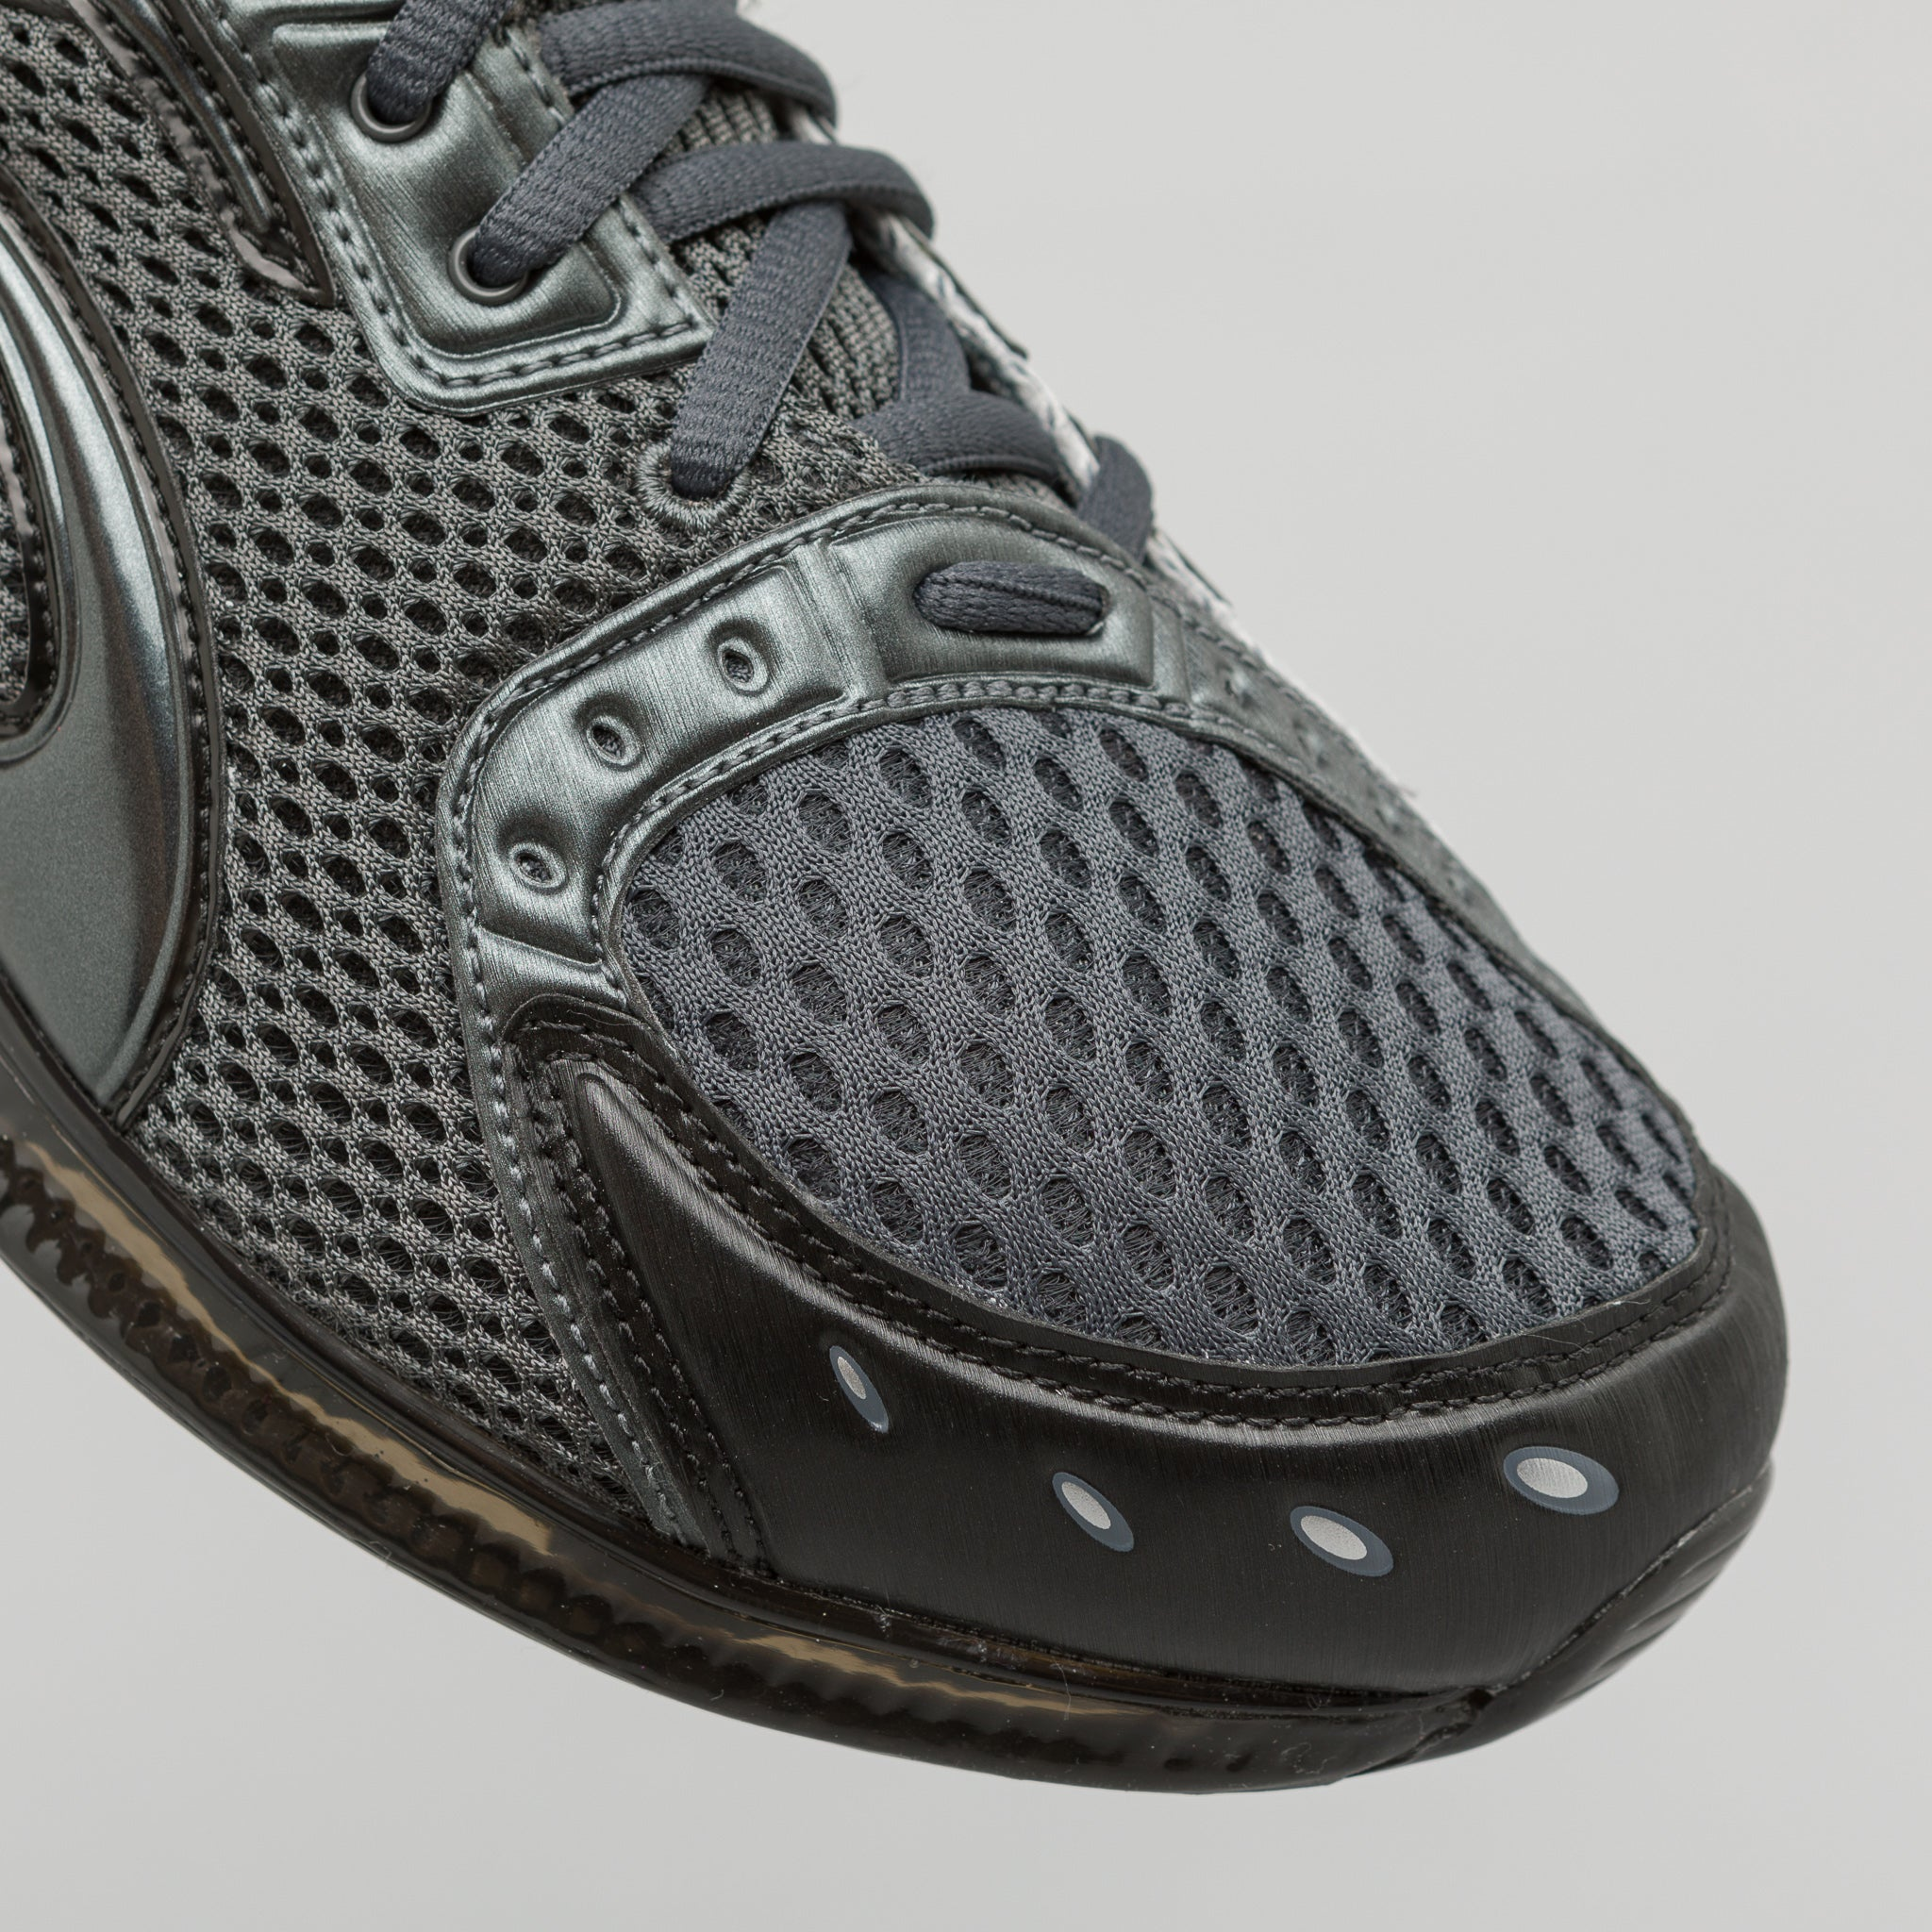 x Kiko Kostadinov GEL-SOKAT INFINITY in Dark Grey